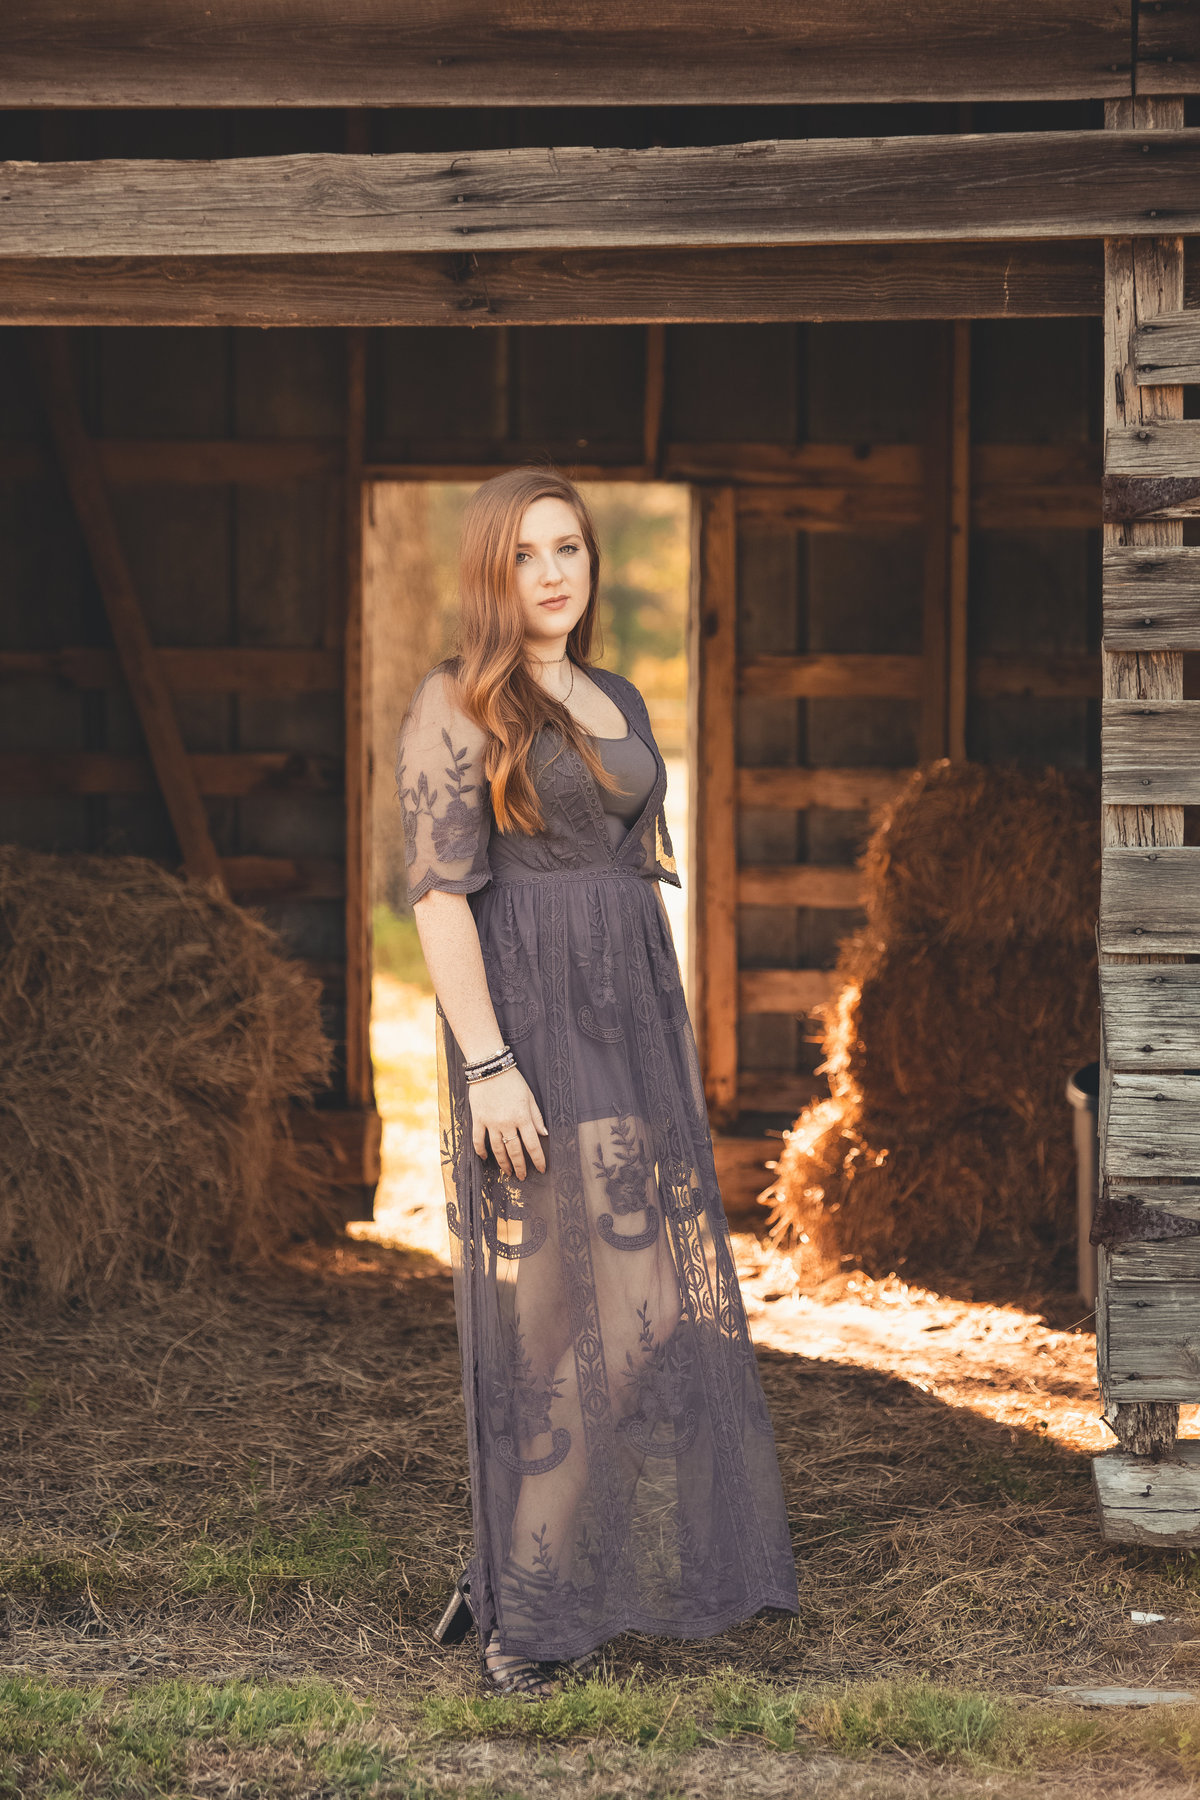 North-Carolina-Senior-Photographer-Lindsay-Corrigan-2019k-8110